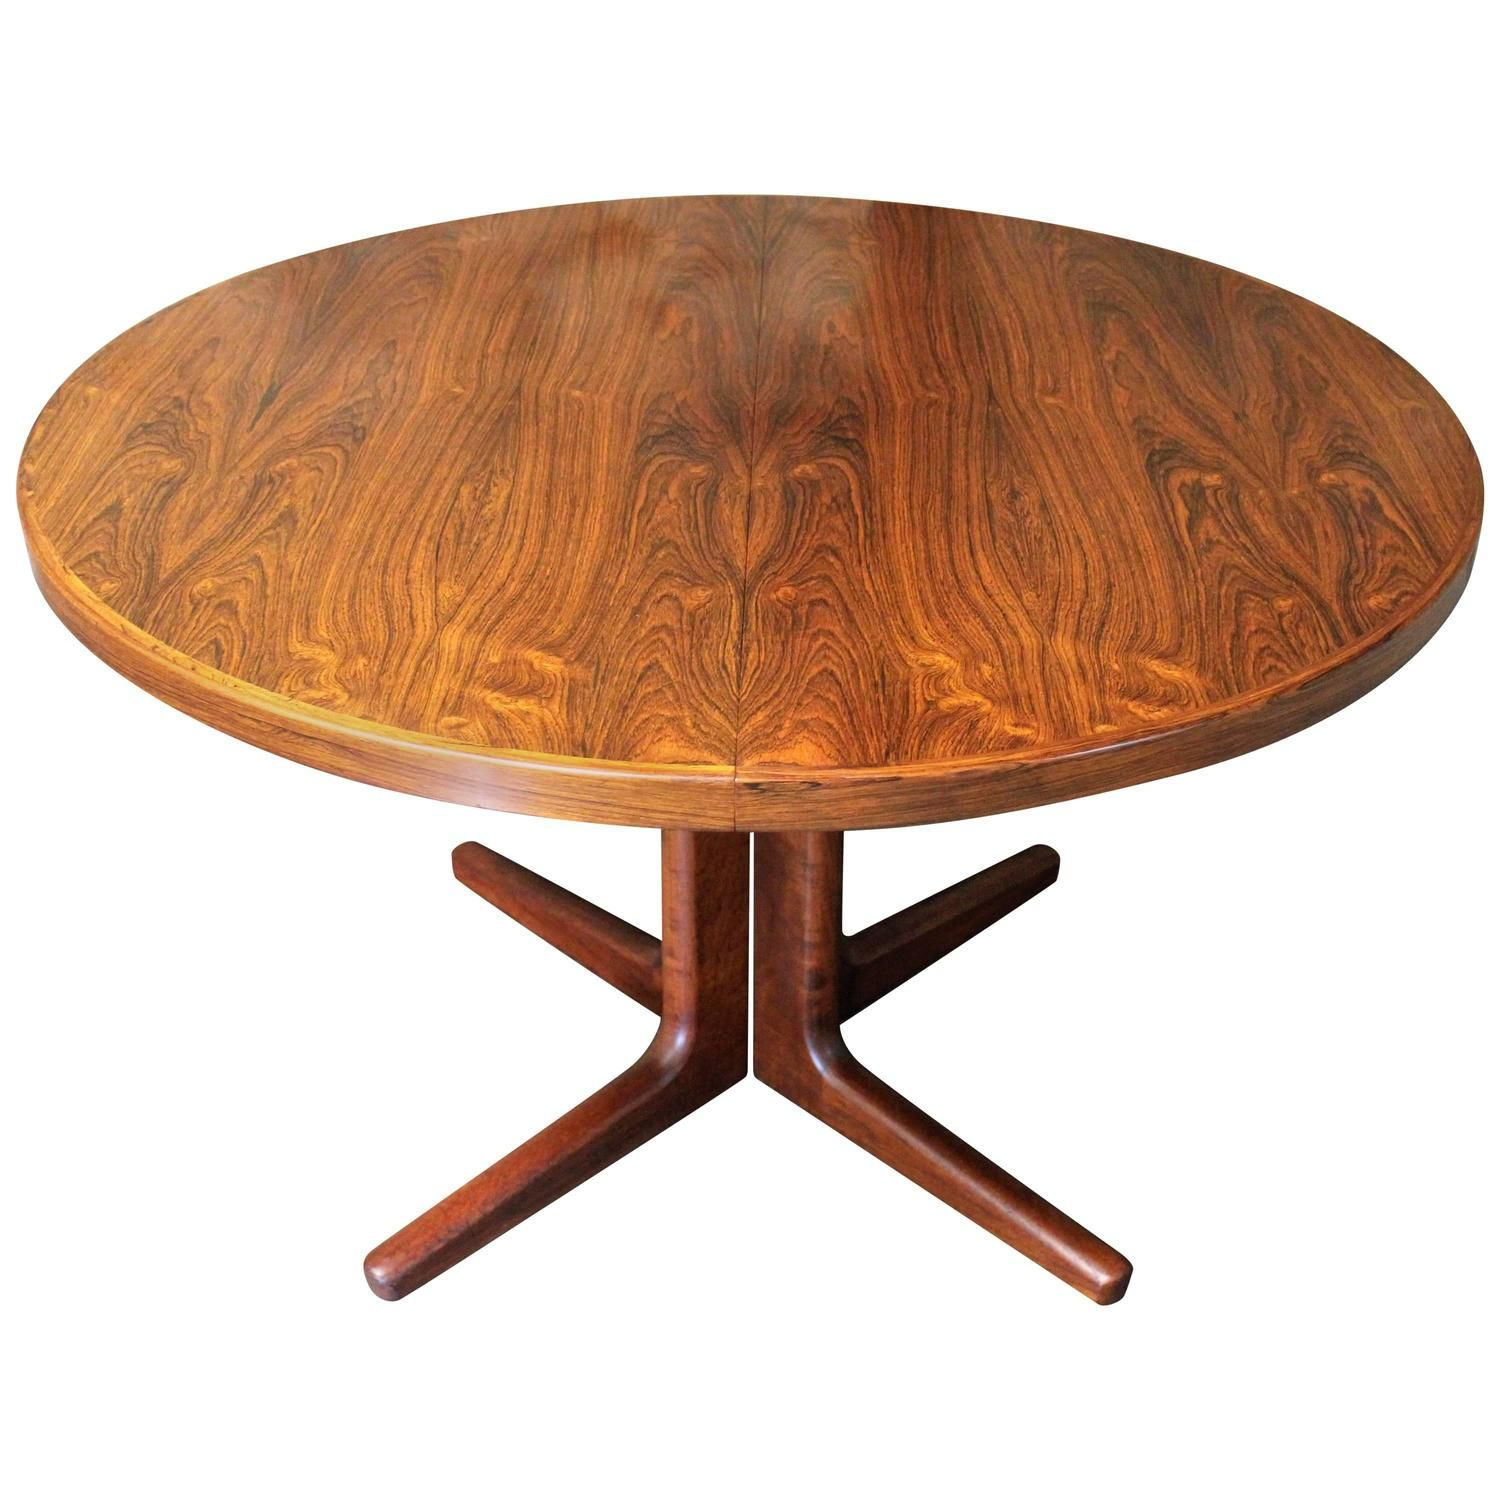 Erik Buck Brazilian Rosewood Dining Table for CJ Rosengaarden